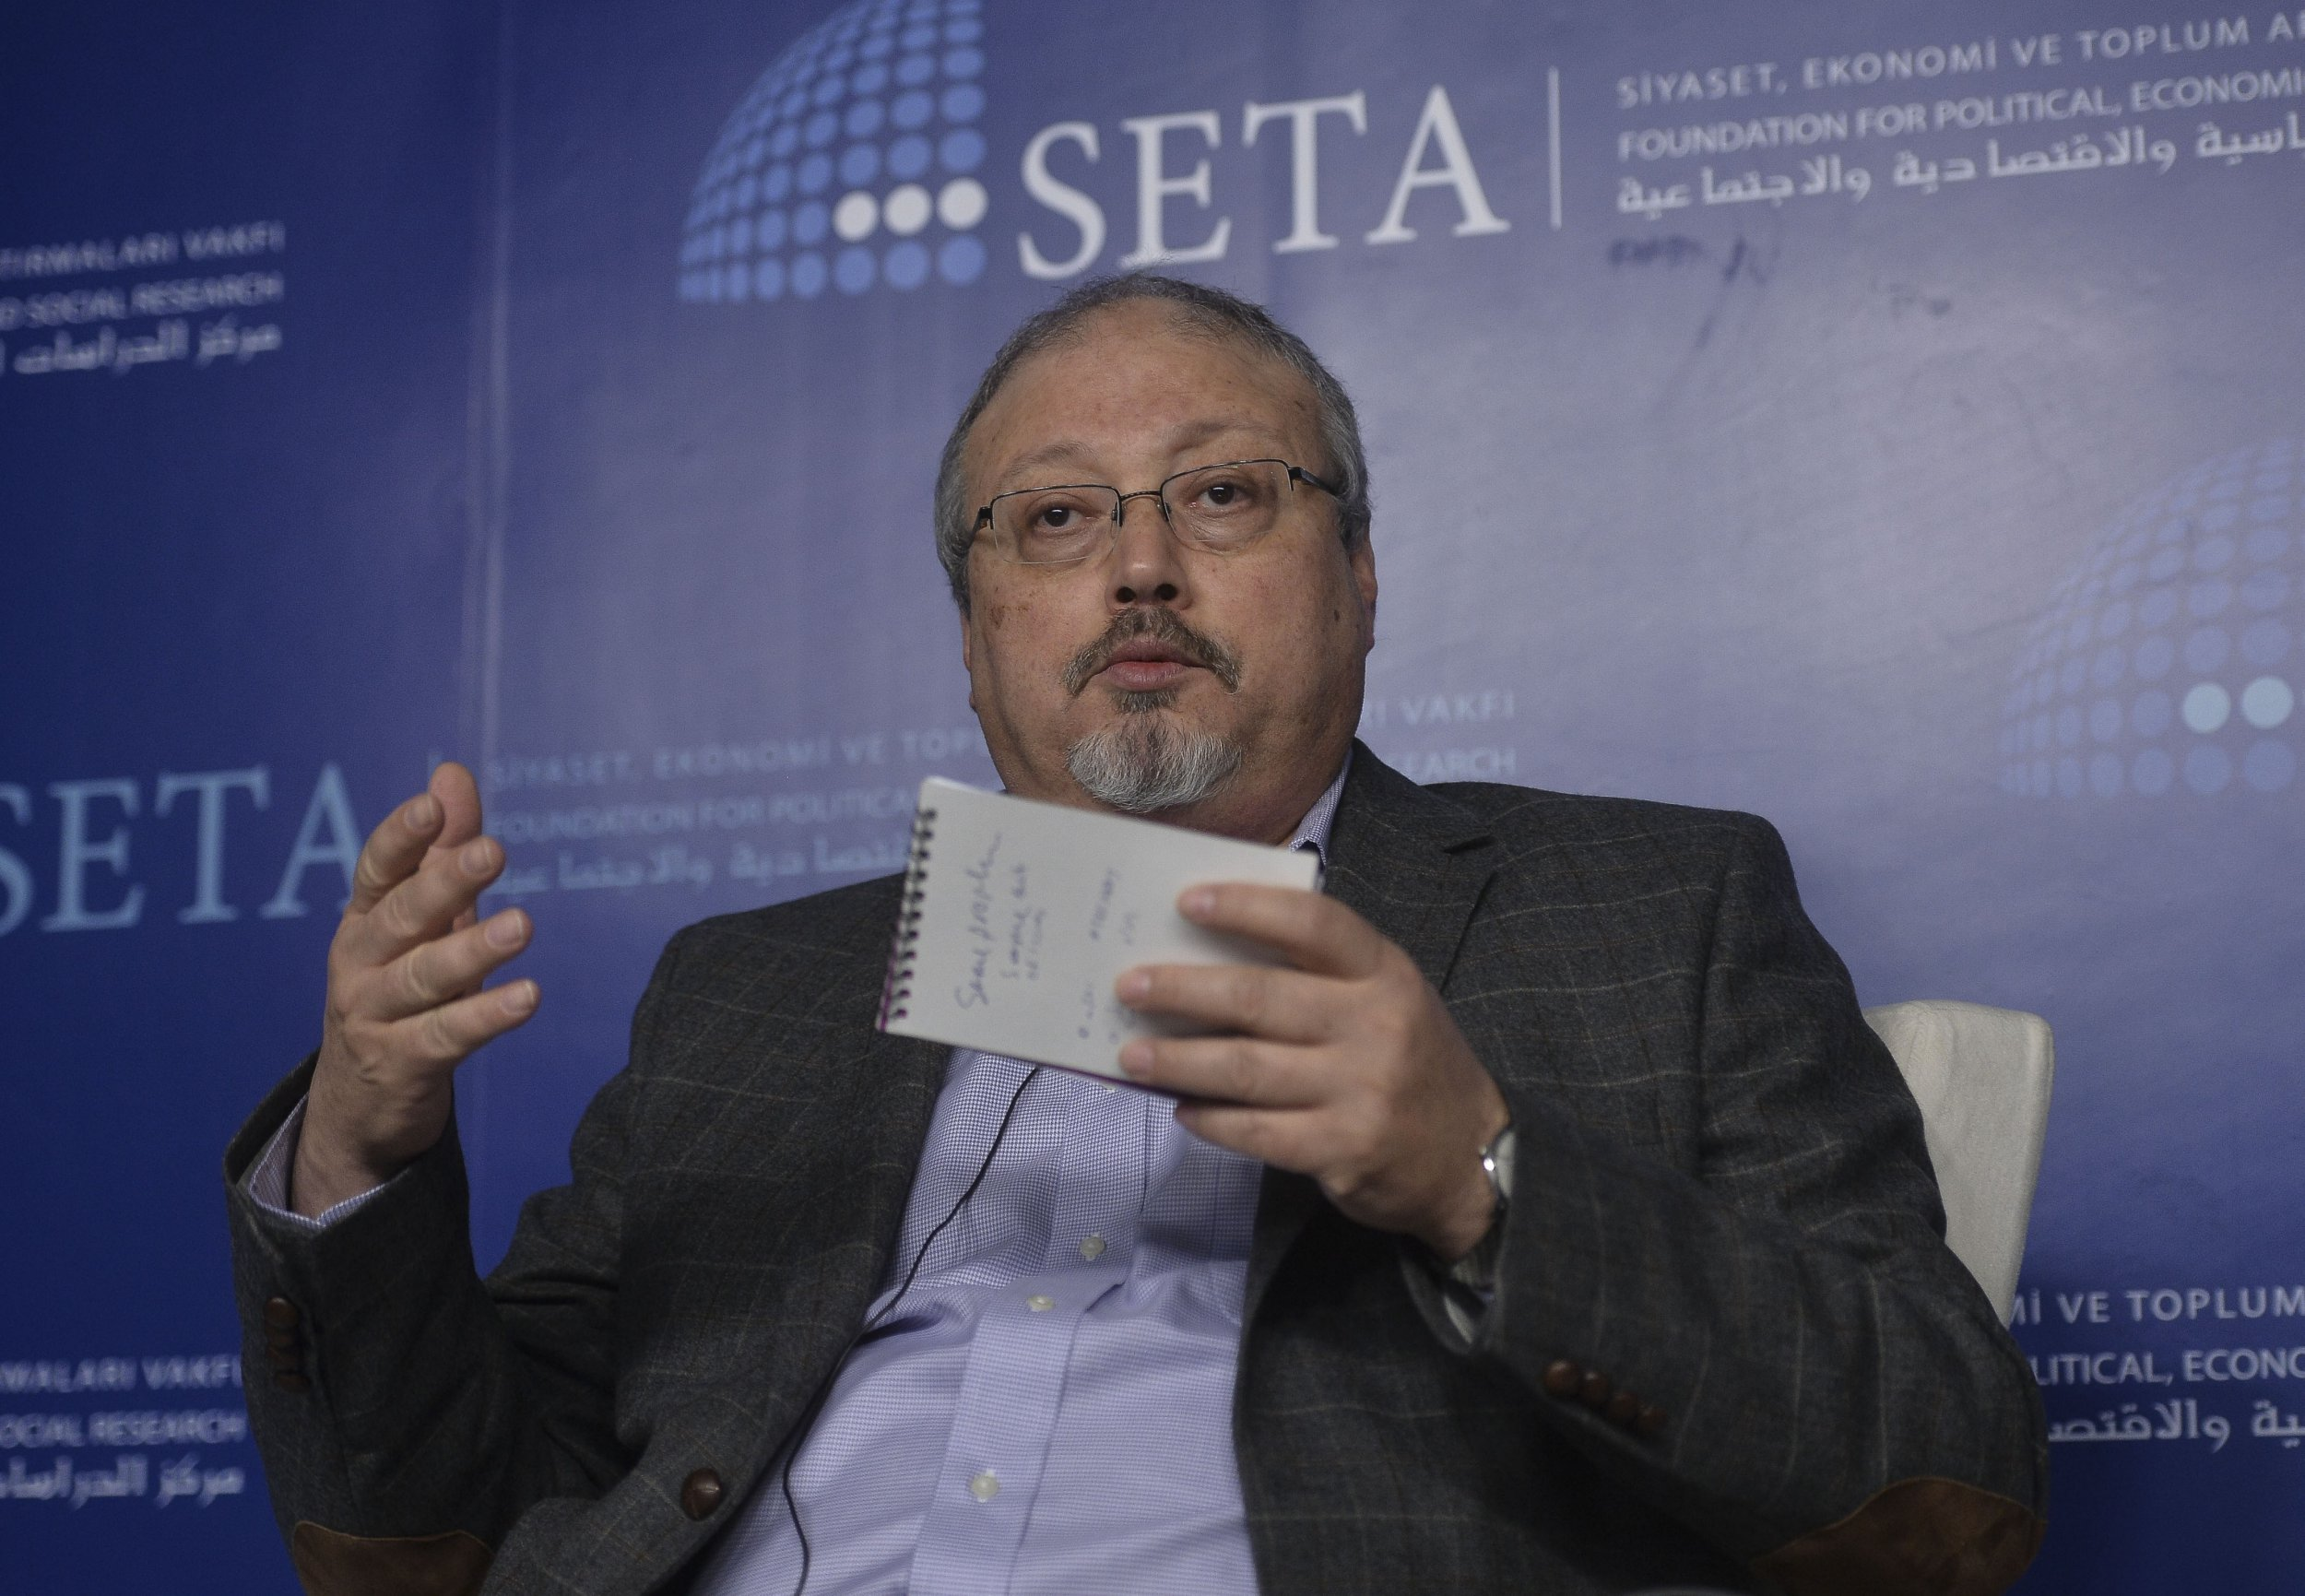 ANKARA, TURKEY - (ARCHIVE) : A file photo dated March 26, 2015 shows Prominent Saudi journalist Jamal Khashoggi speaking during a panel titled 'Crisis in Syria: An Endless War?' organised by Foundation for Political, Economic and Social Research (SETA) Foundation in Ankara, Turkey. Saudi journalist Jamal Khashoggi died after a brawl inside the Saudi consulate in Istanbul, Saudi Arabia announced Saturday. (Photo by Gokhan Balci/Anadolu Agency/Getty Images)